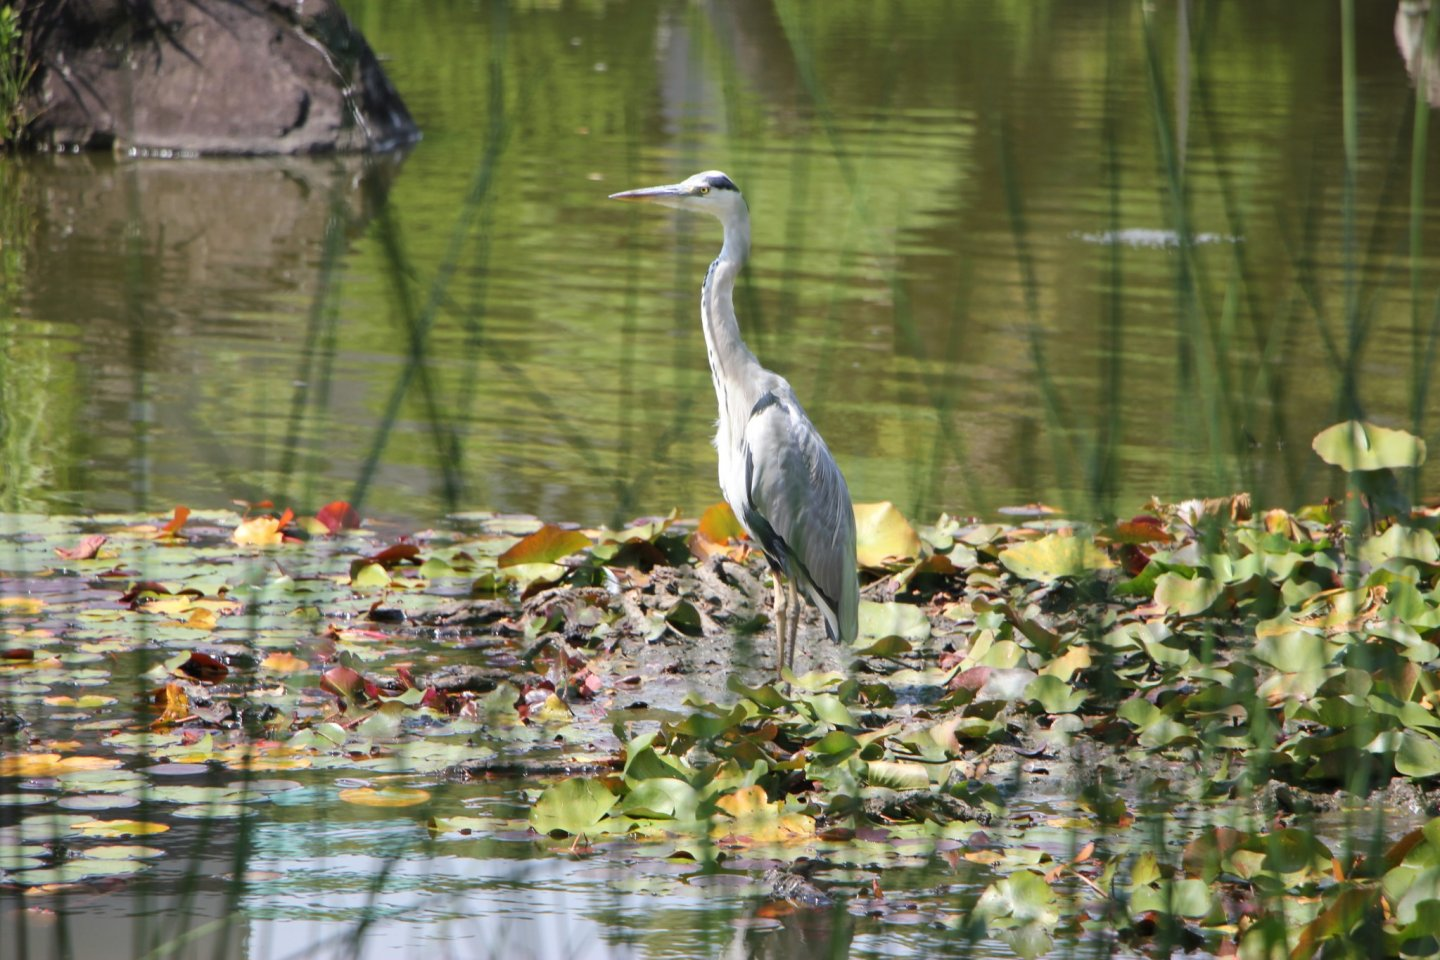 A heron cleaning itsfeathers in the middle of the pond